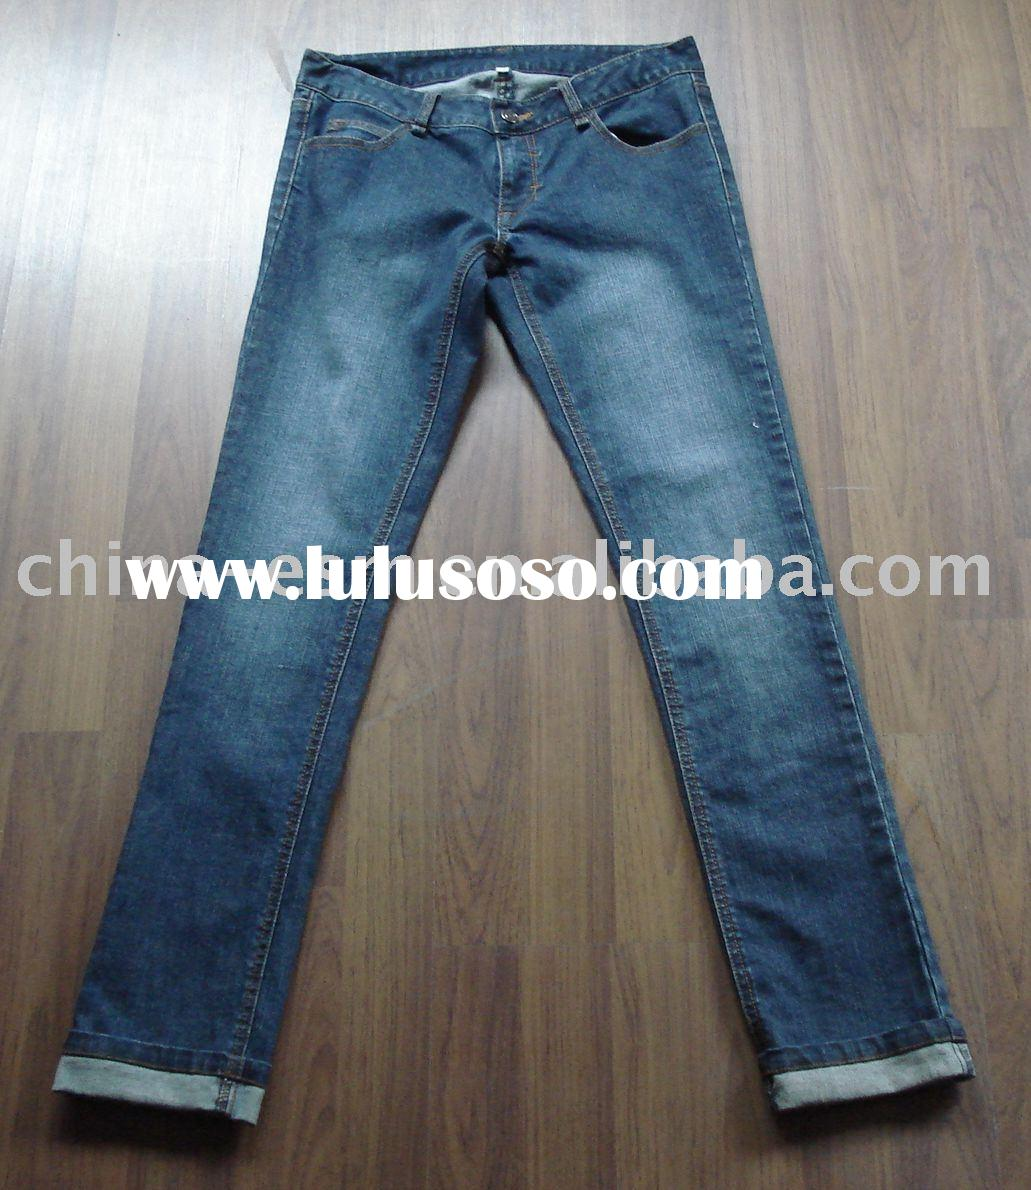 Fashion Jeans Skinny Jeans